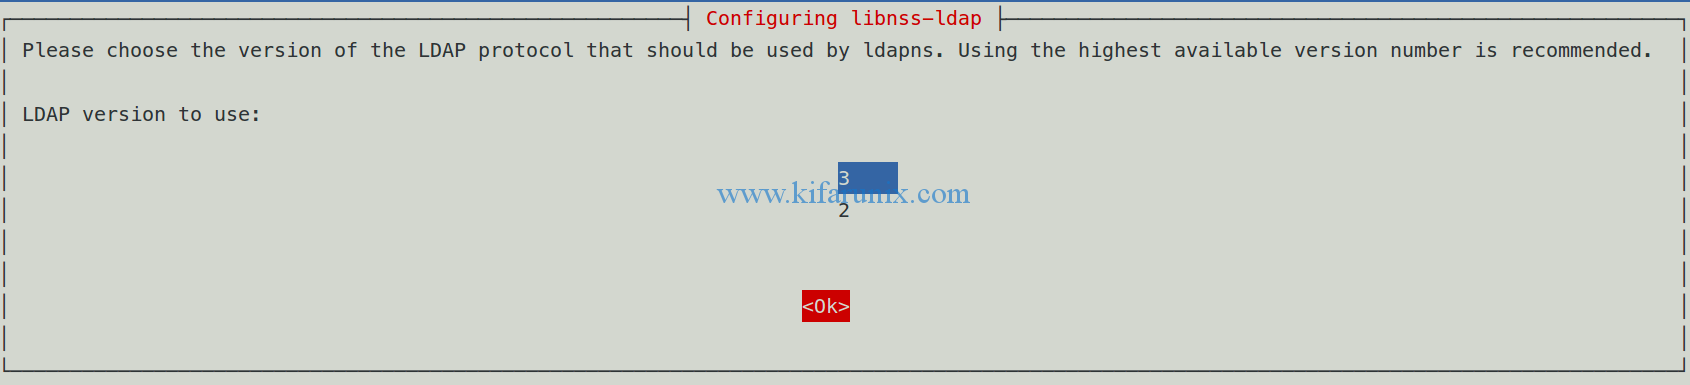 Configure OpenLDAP Client on Debian 9 Stretch - kifarunix com